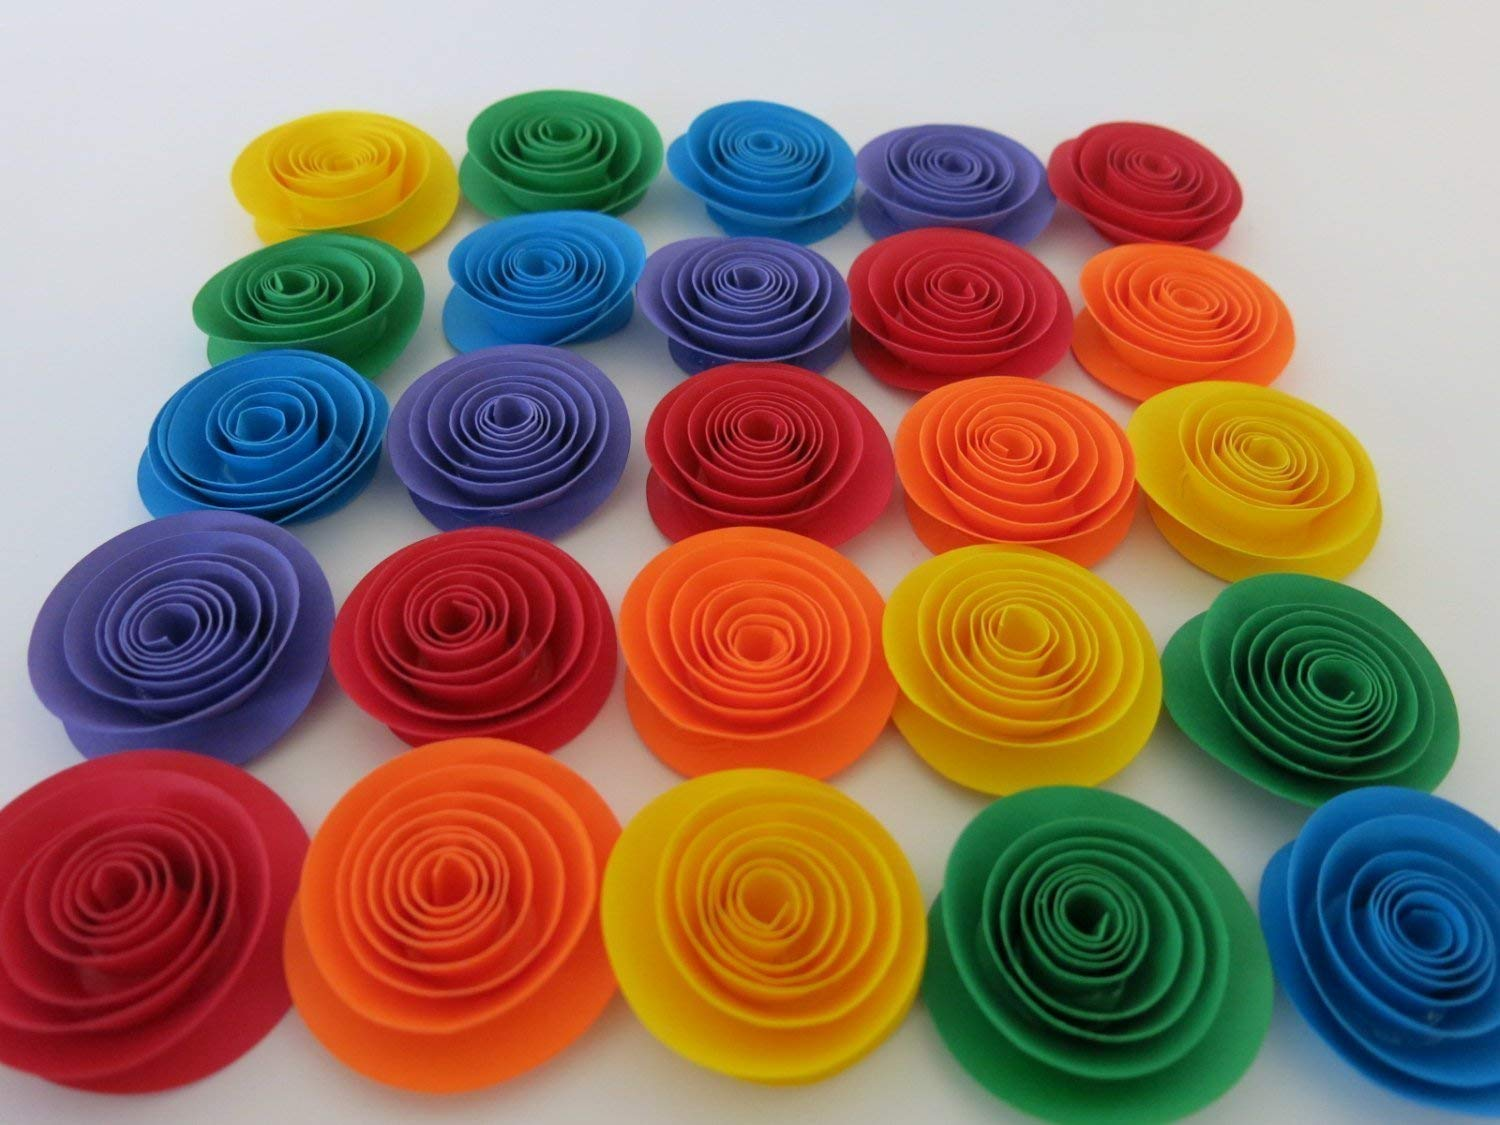 silk flower arrangements rainbow paper flower for wedding table centerpiece 1.5 inch roses child circus theme birthday party decorations set of 24